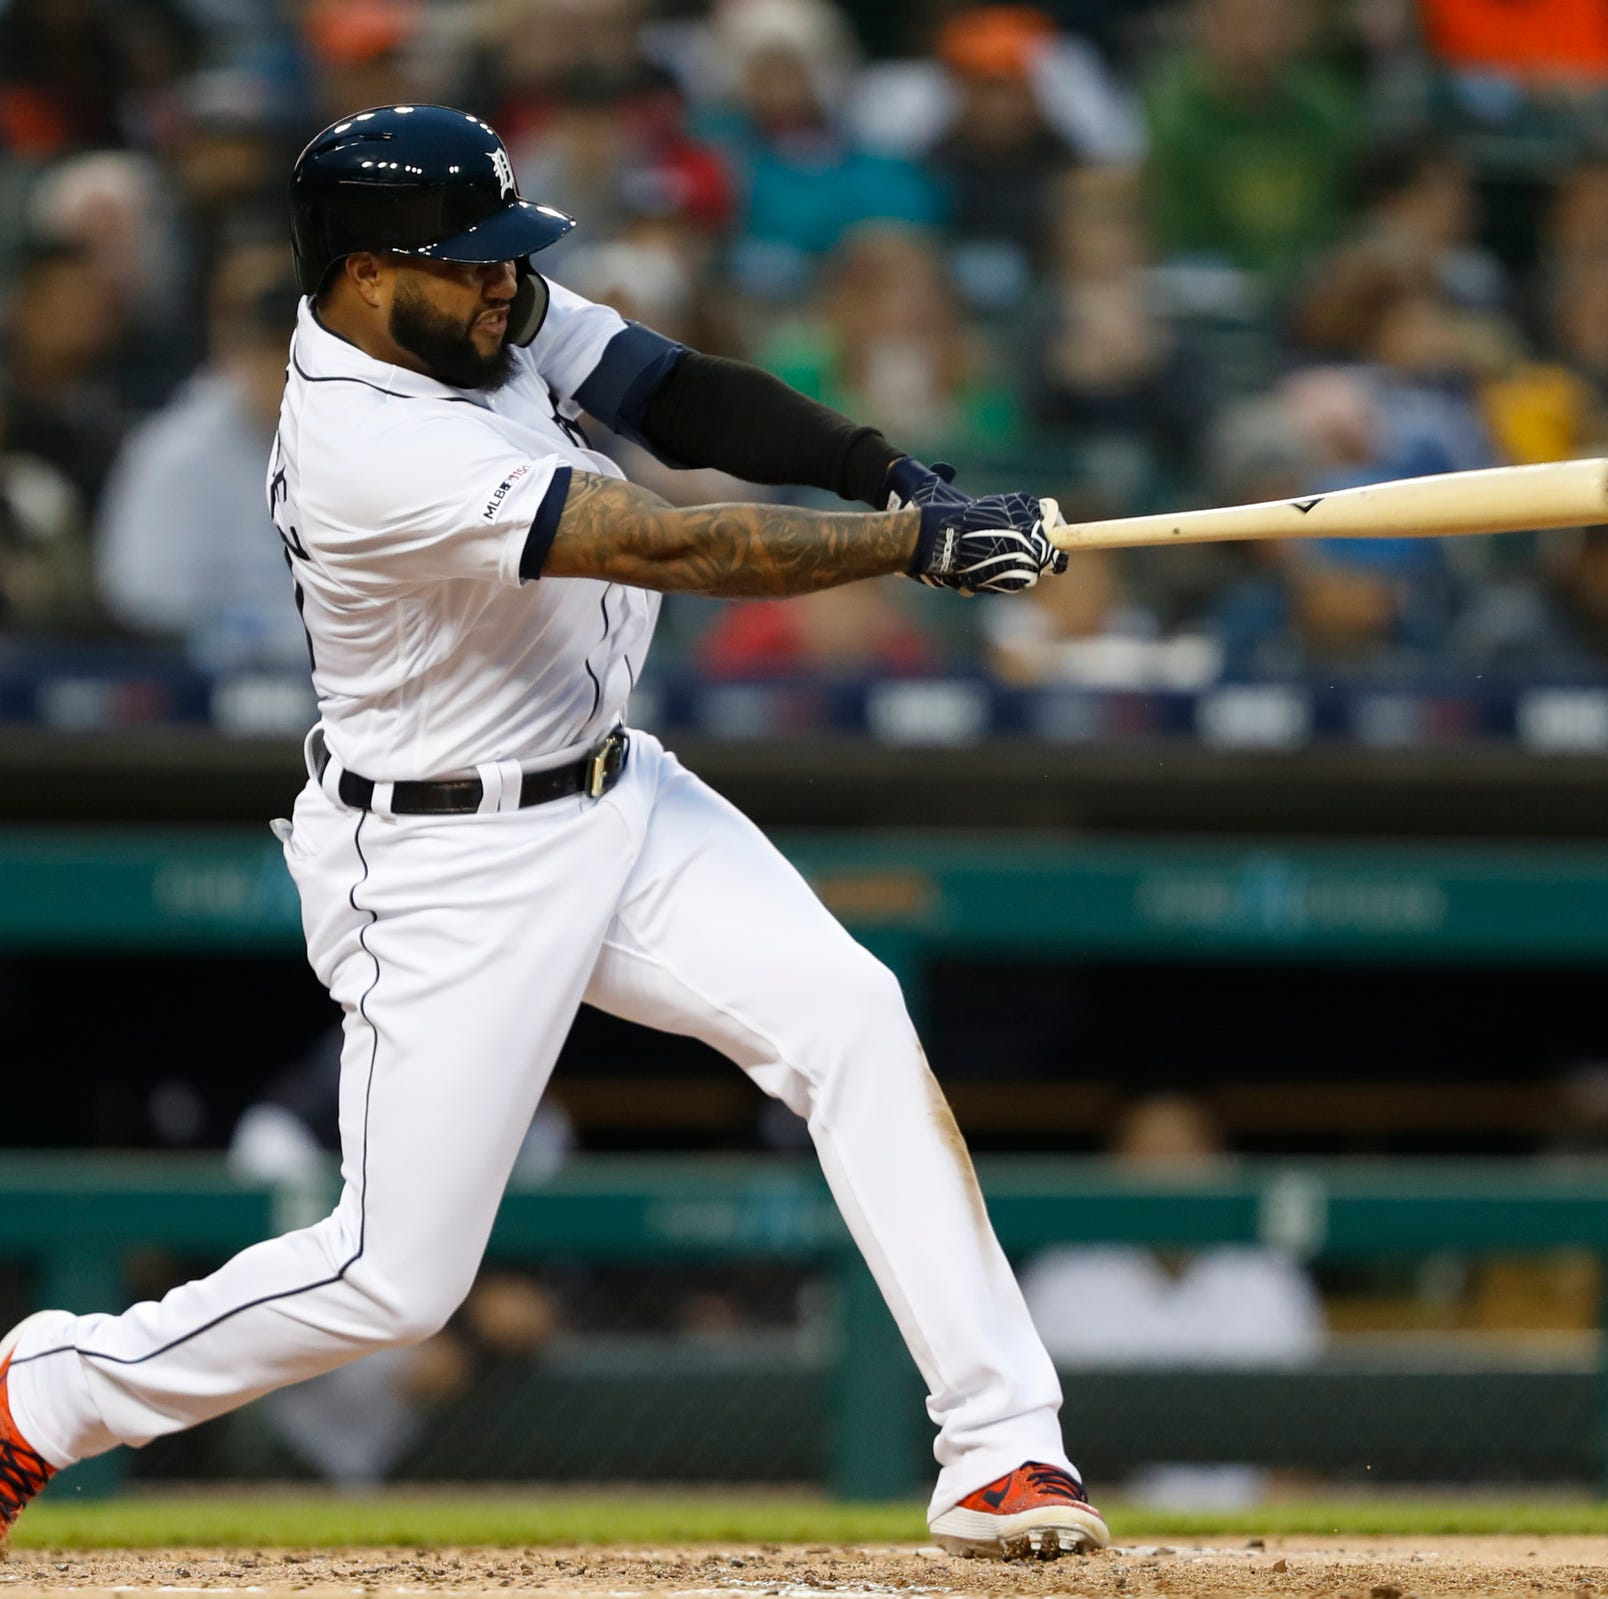 Detroit Tigers lineup vs. Kansas City Royals: DH Dixon, CF Castro